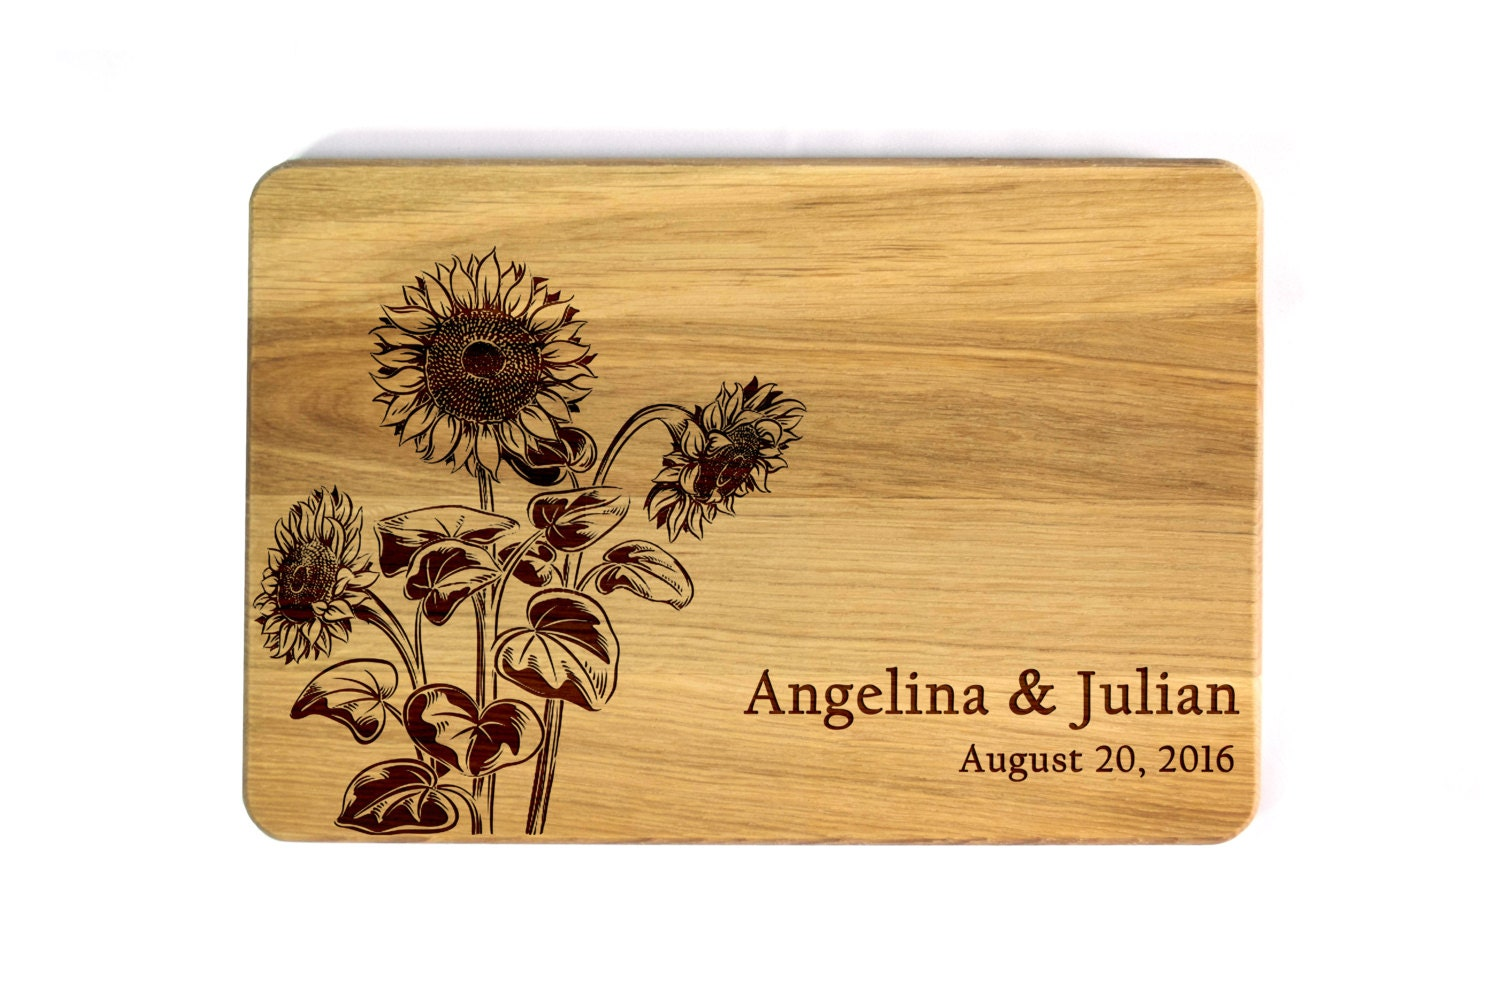 Wedding Gift Ideas Australia: Wedding Cutting Board Sunflowers Wedding Gift For Couple